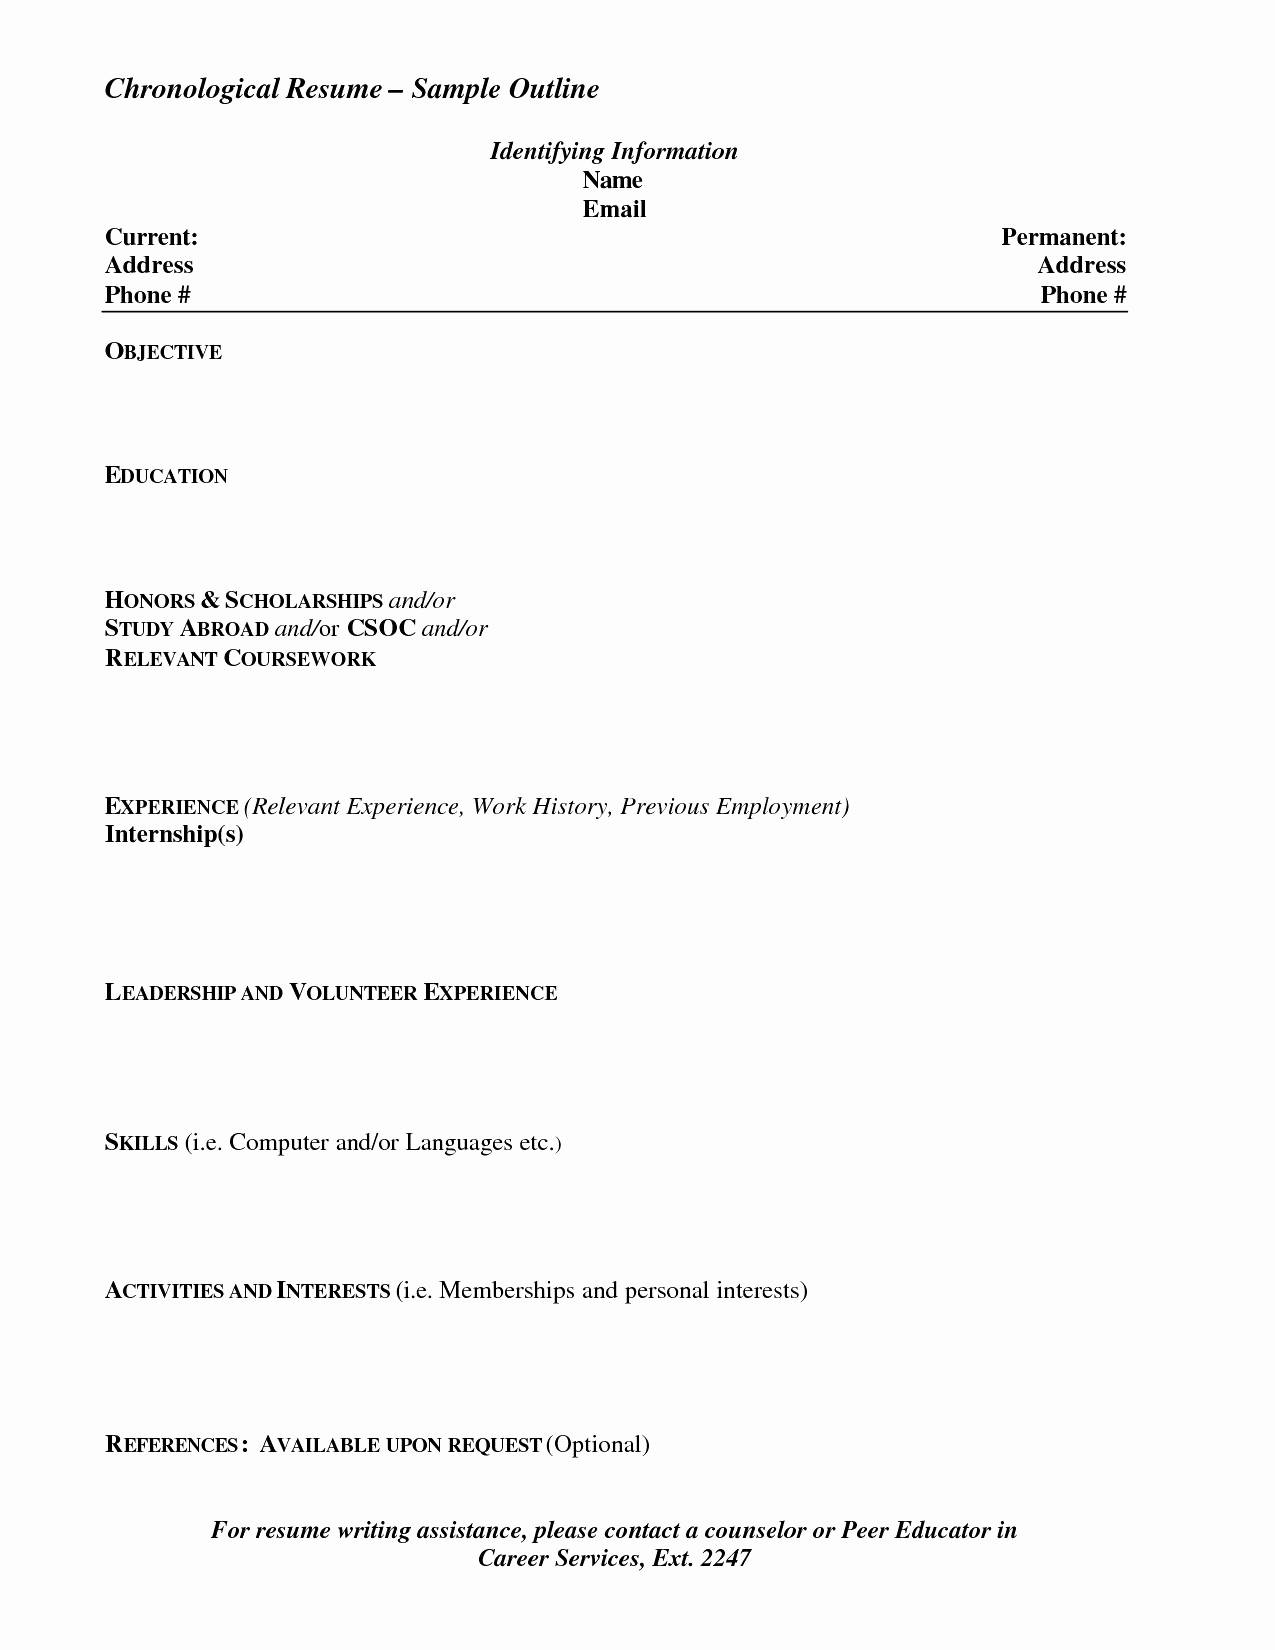 Engineering Covering Letter Template - Engineering Covering Letter Unique Programmer Resume Lovely Resume